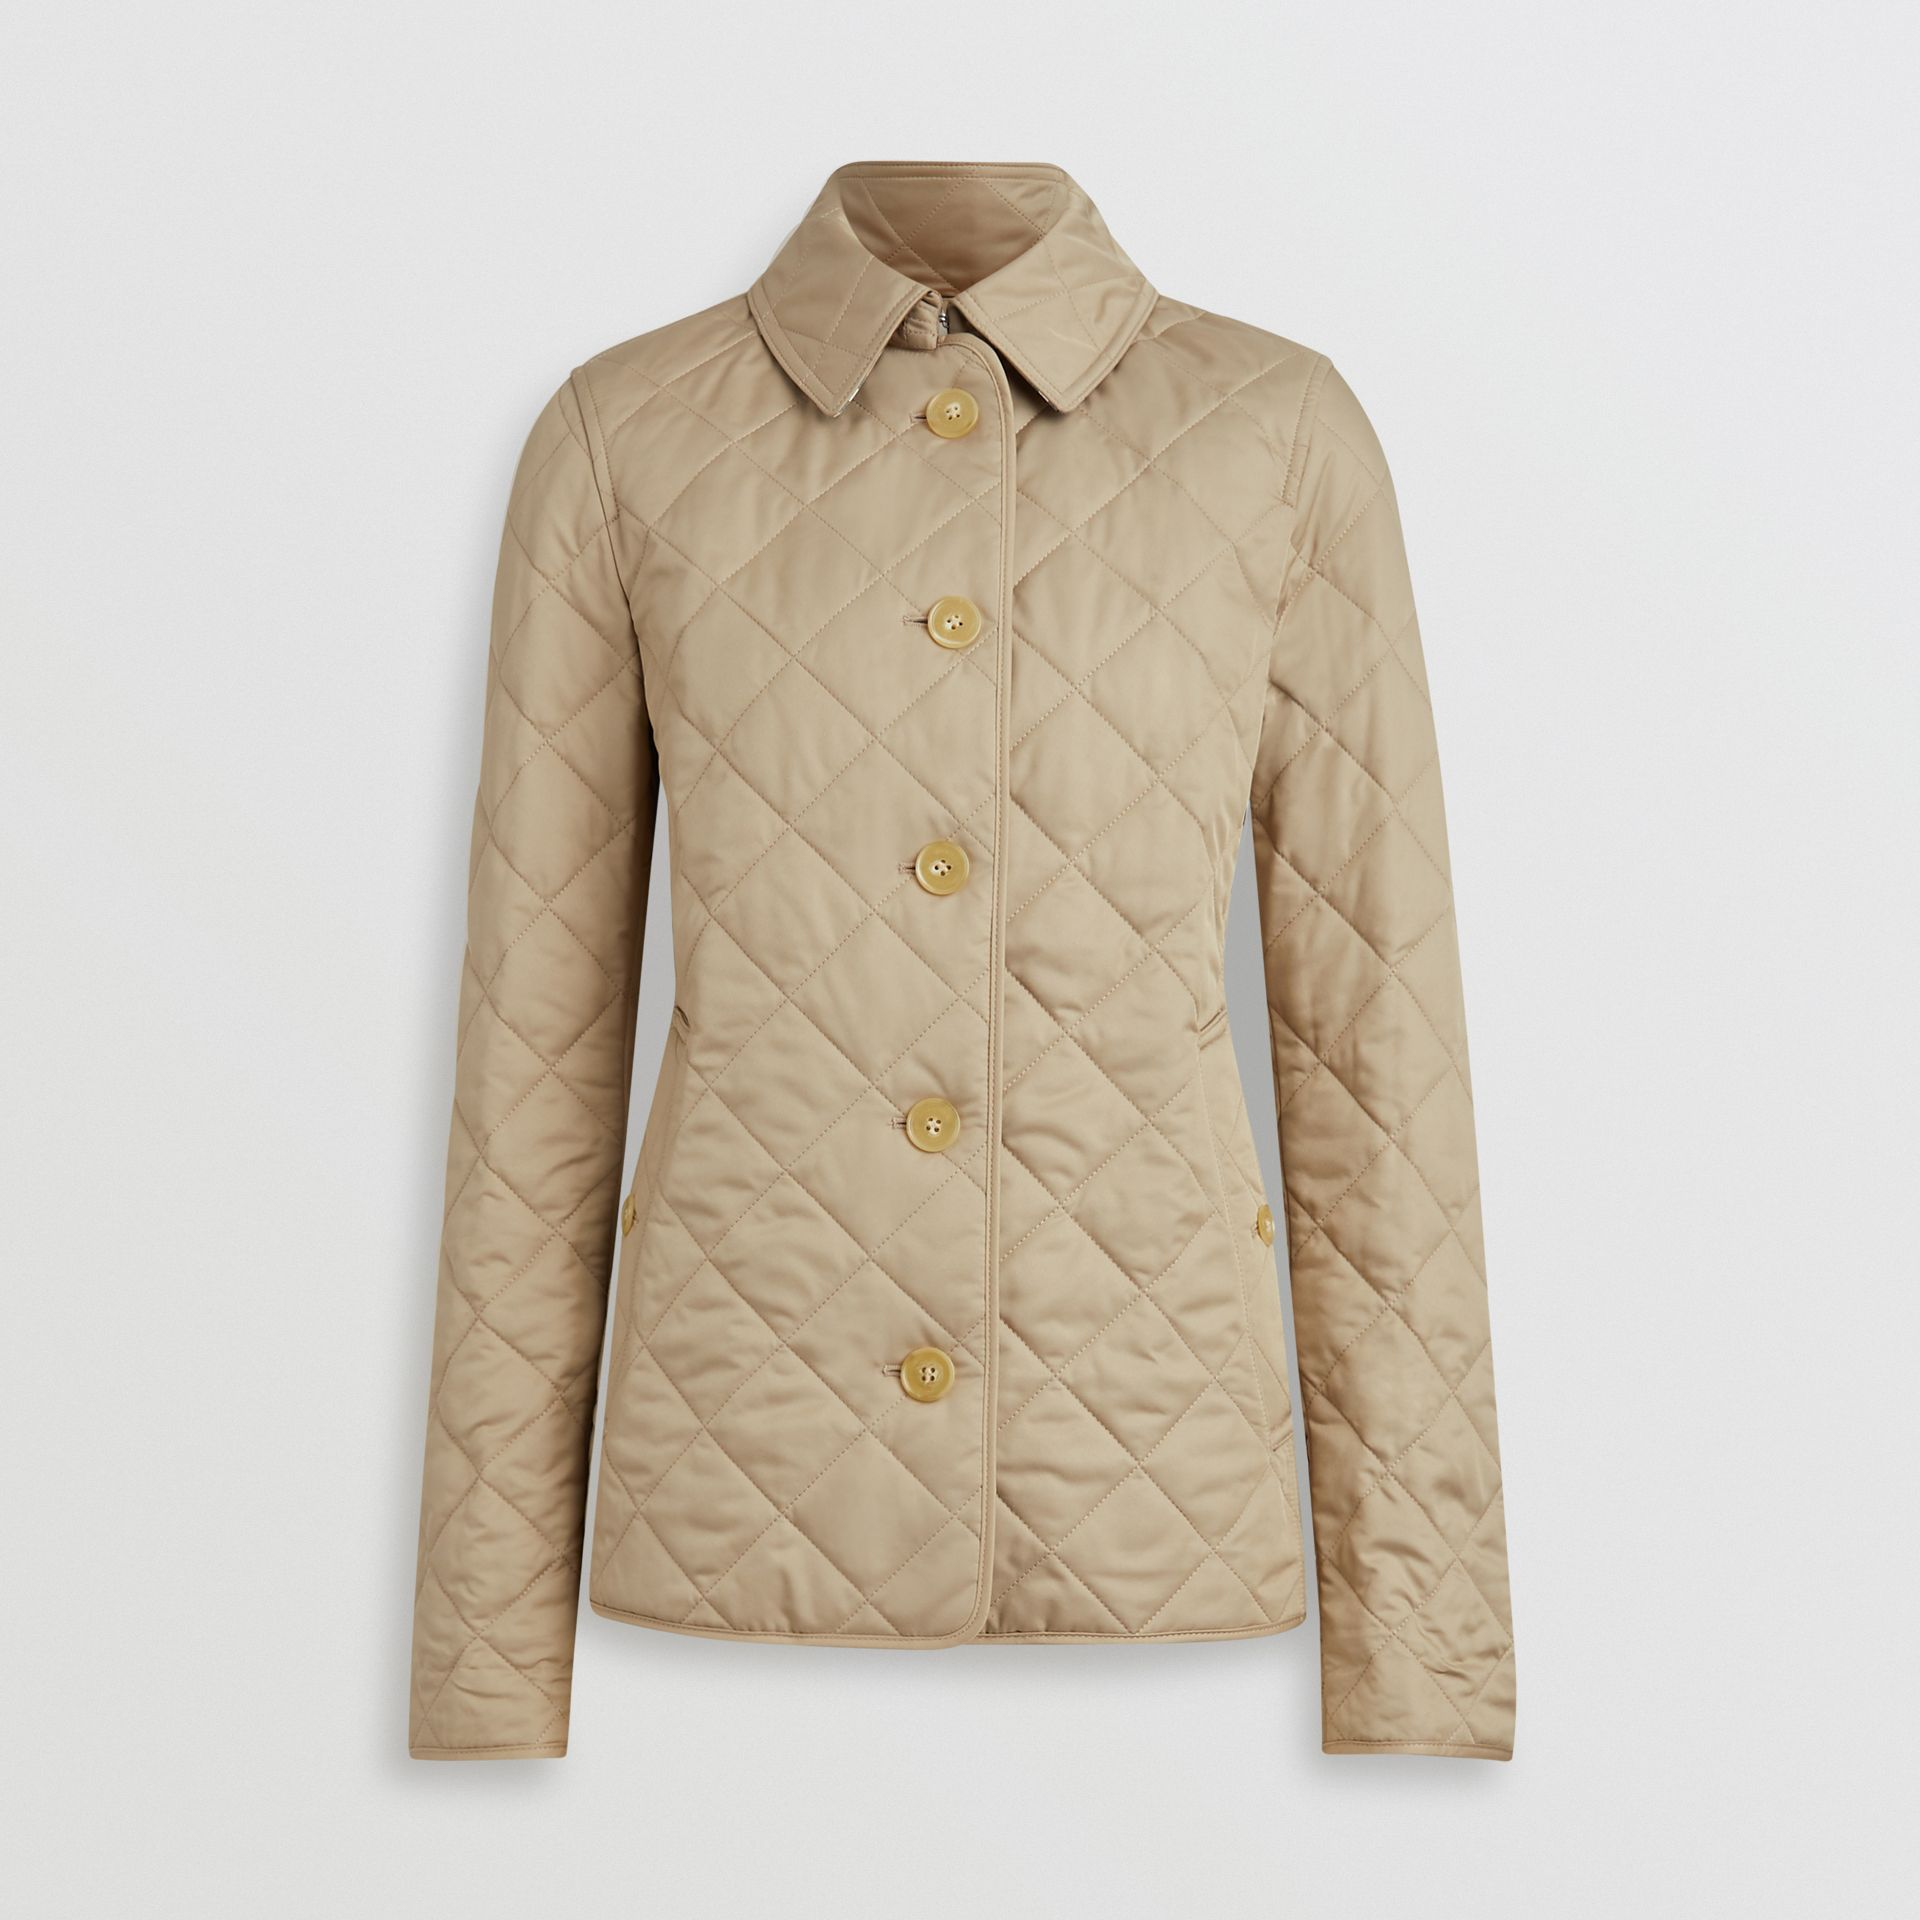 Diamond Quilted Jacket in Canvas - Women | Burberry Australia - gallery image 3